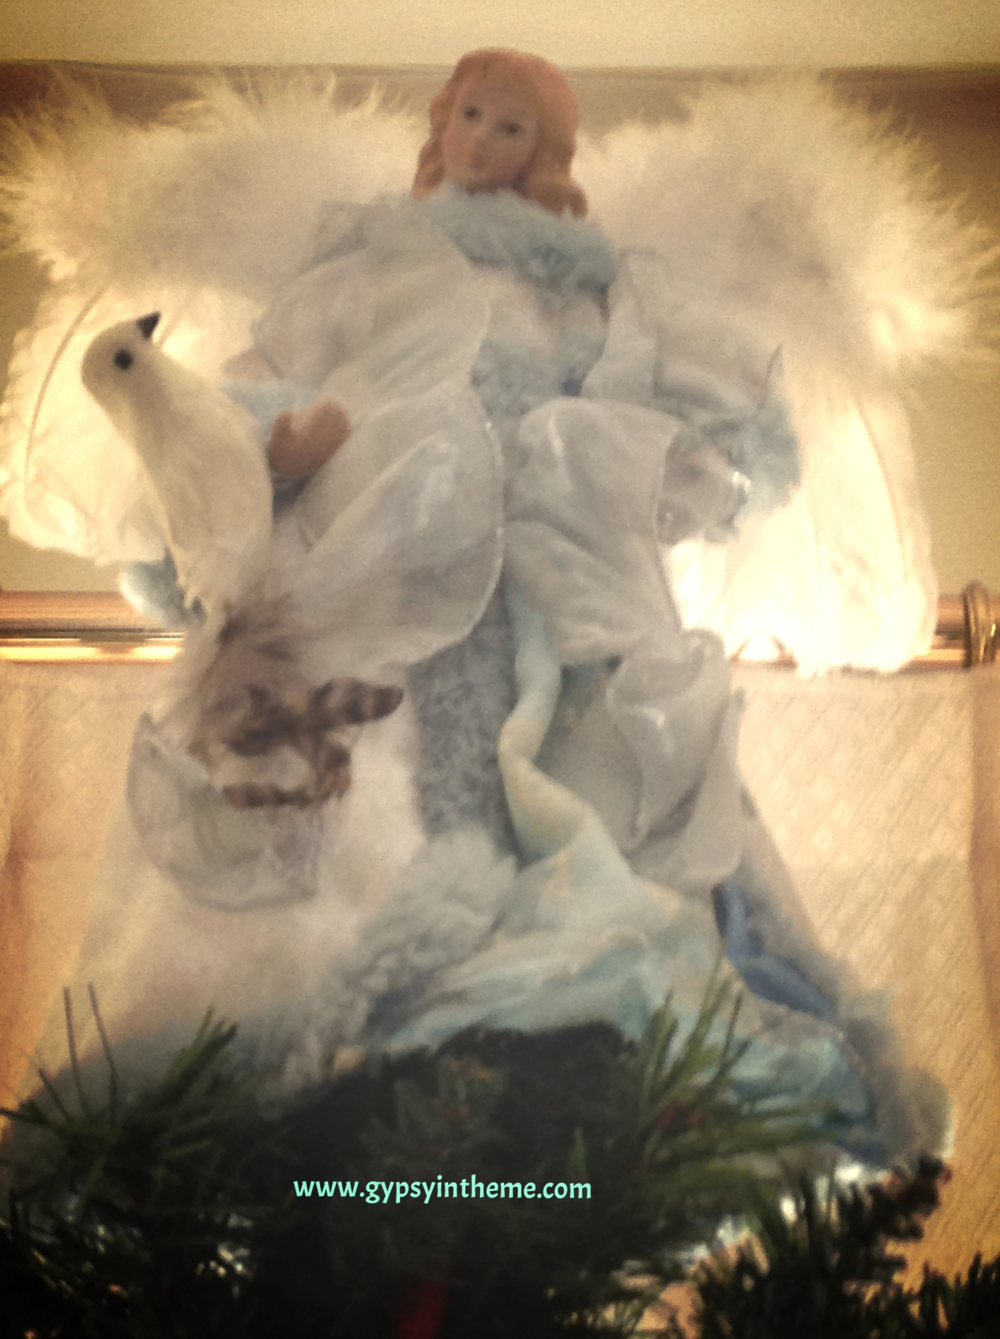 The angel that sits upon our tree each year, given to me by my mom to celebrate a new beginning with Smilin' Vic the year Kiddo was born.  It meant a lot for her to recognise the new beginnings.